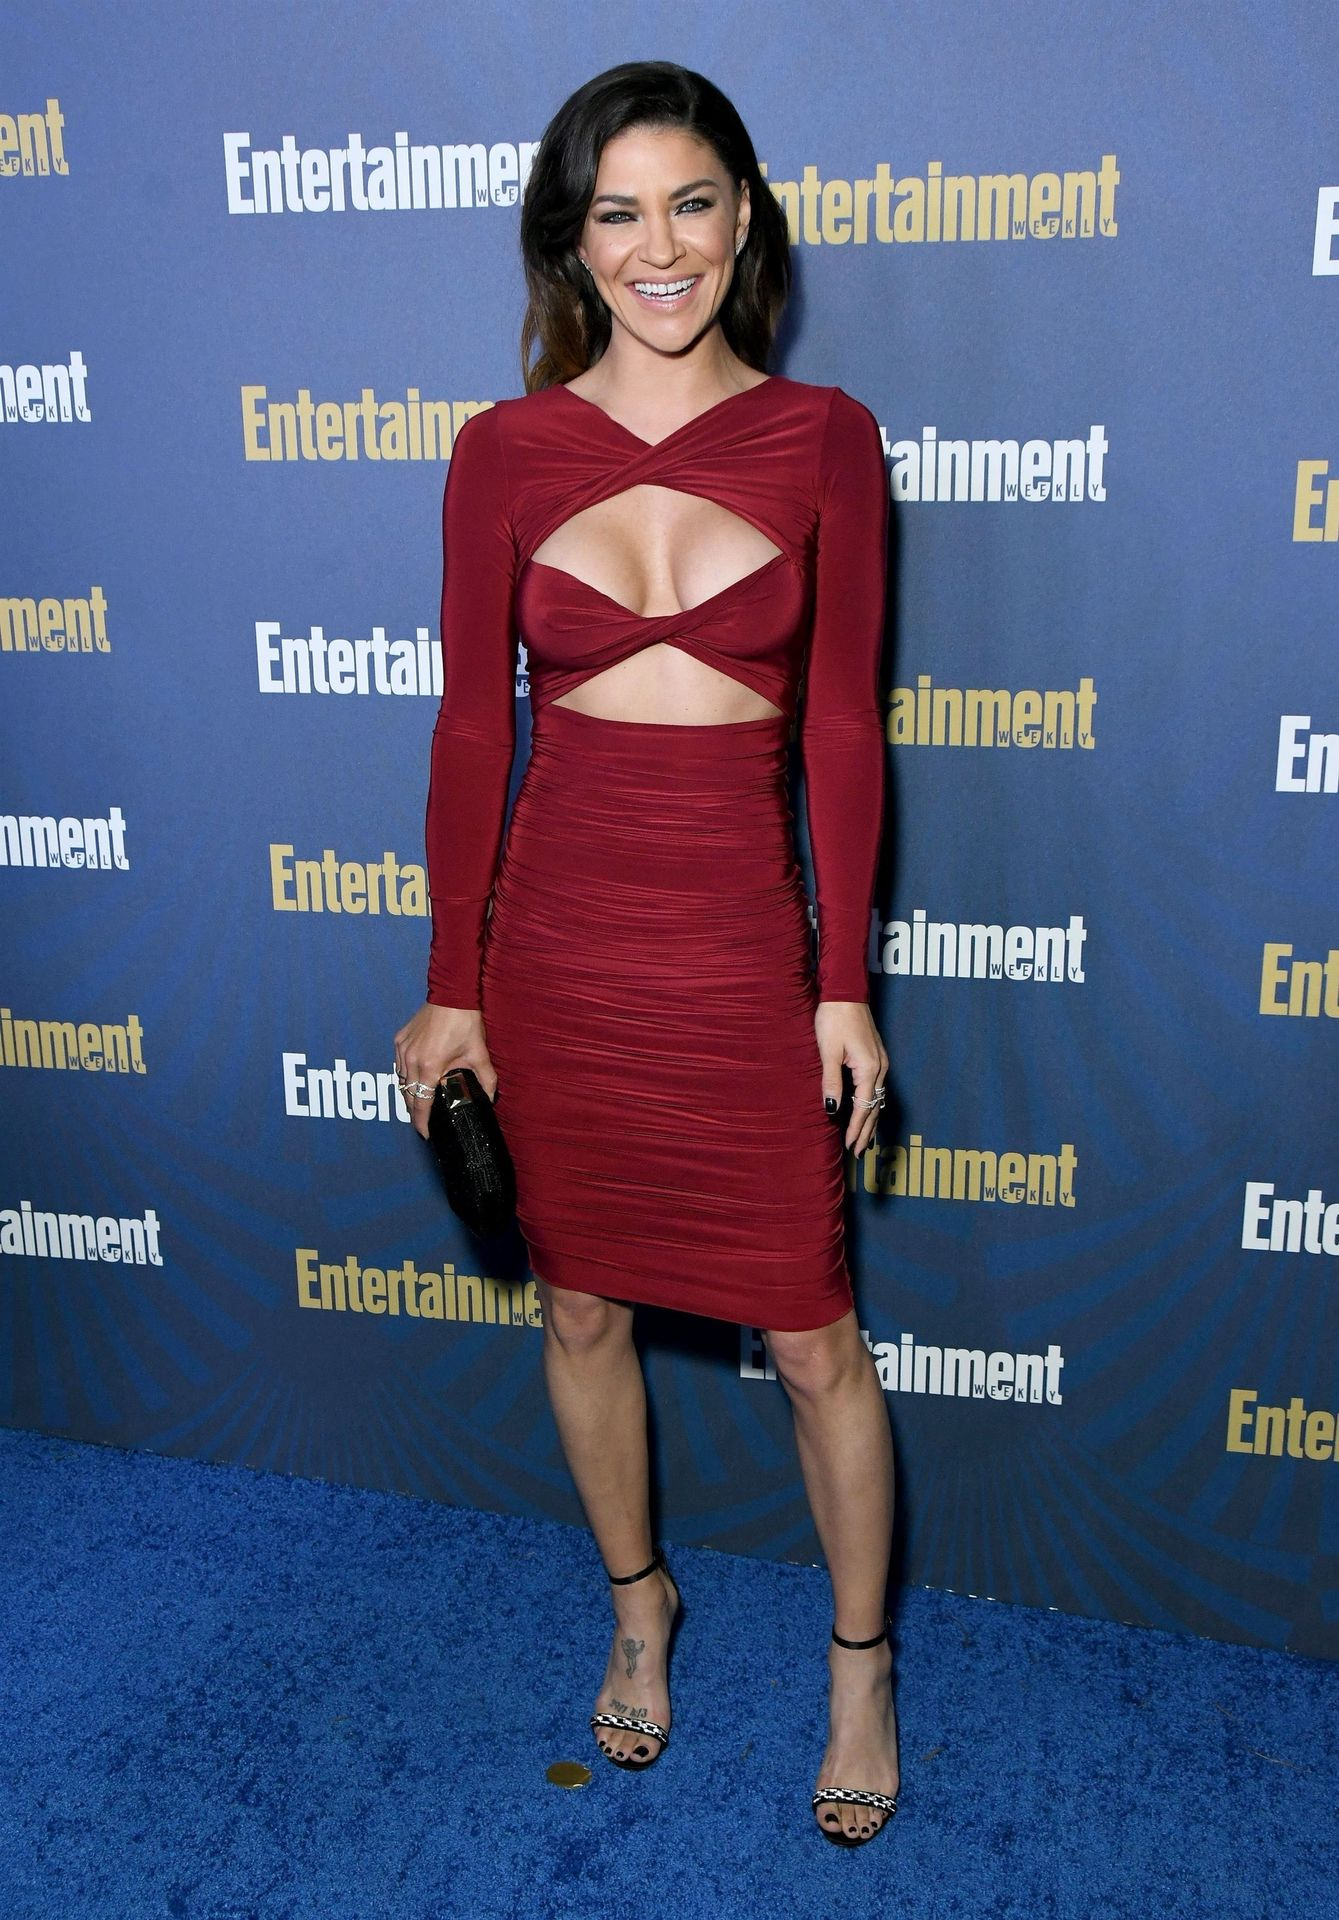 Jessica Szohr Shows Her Cleavage At The Entertainment Weekly Pre Sag Awards Celebration 0007